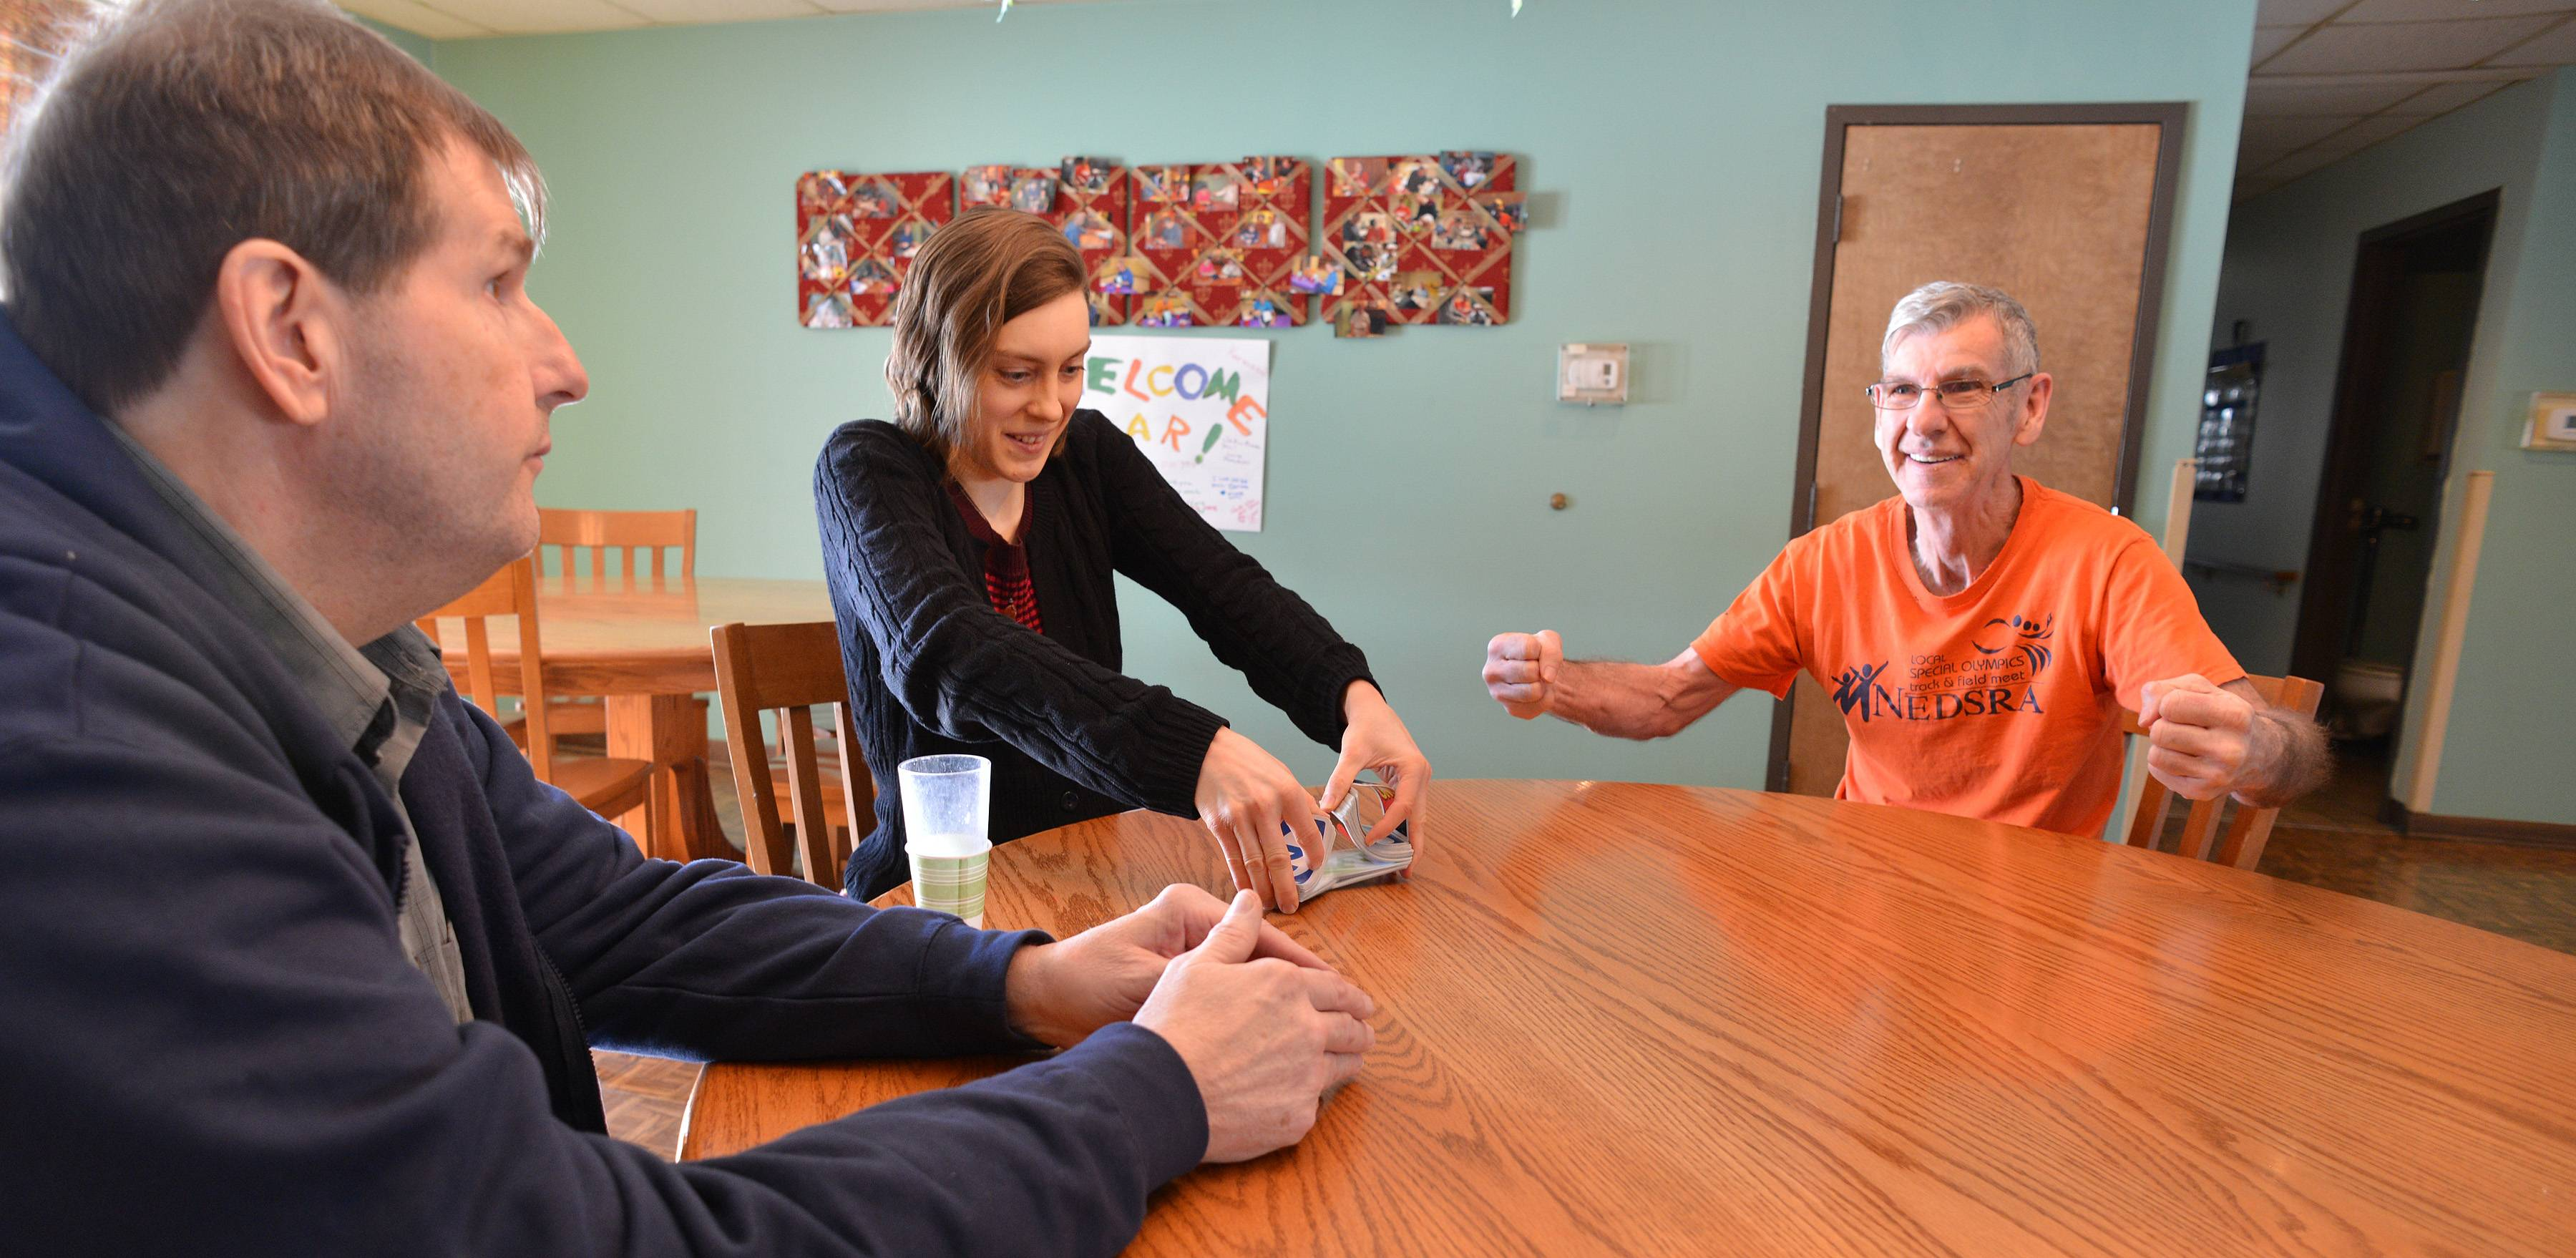 Deicke Home volunteer Tiffany Brownlie, center, plays cards with residents Jim Bosh and Eddie Doutlick. Officials at the home, which serves high-functioning adults with disabilities, originally feared it would have to close at the end of March. Now, they say, an outpouring of community support will keep it open at least until the end of July.